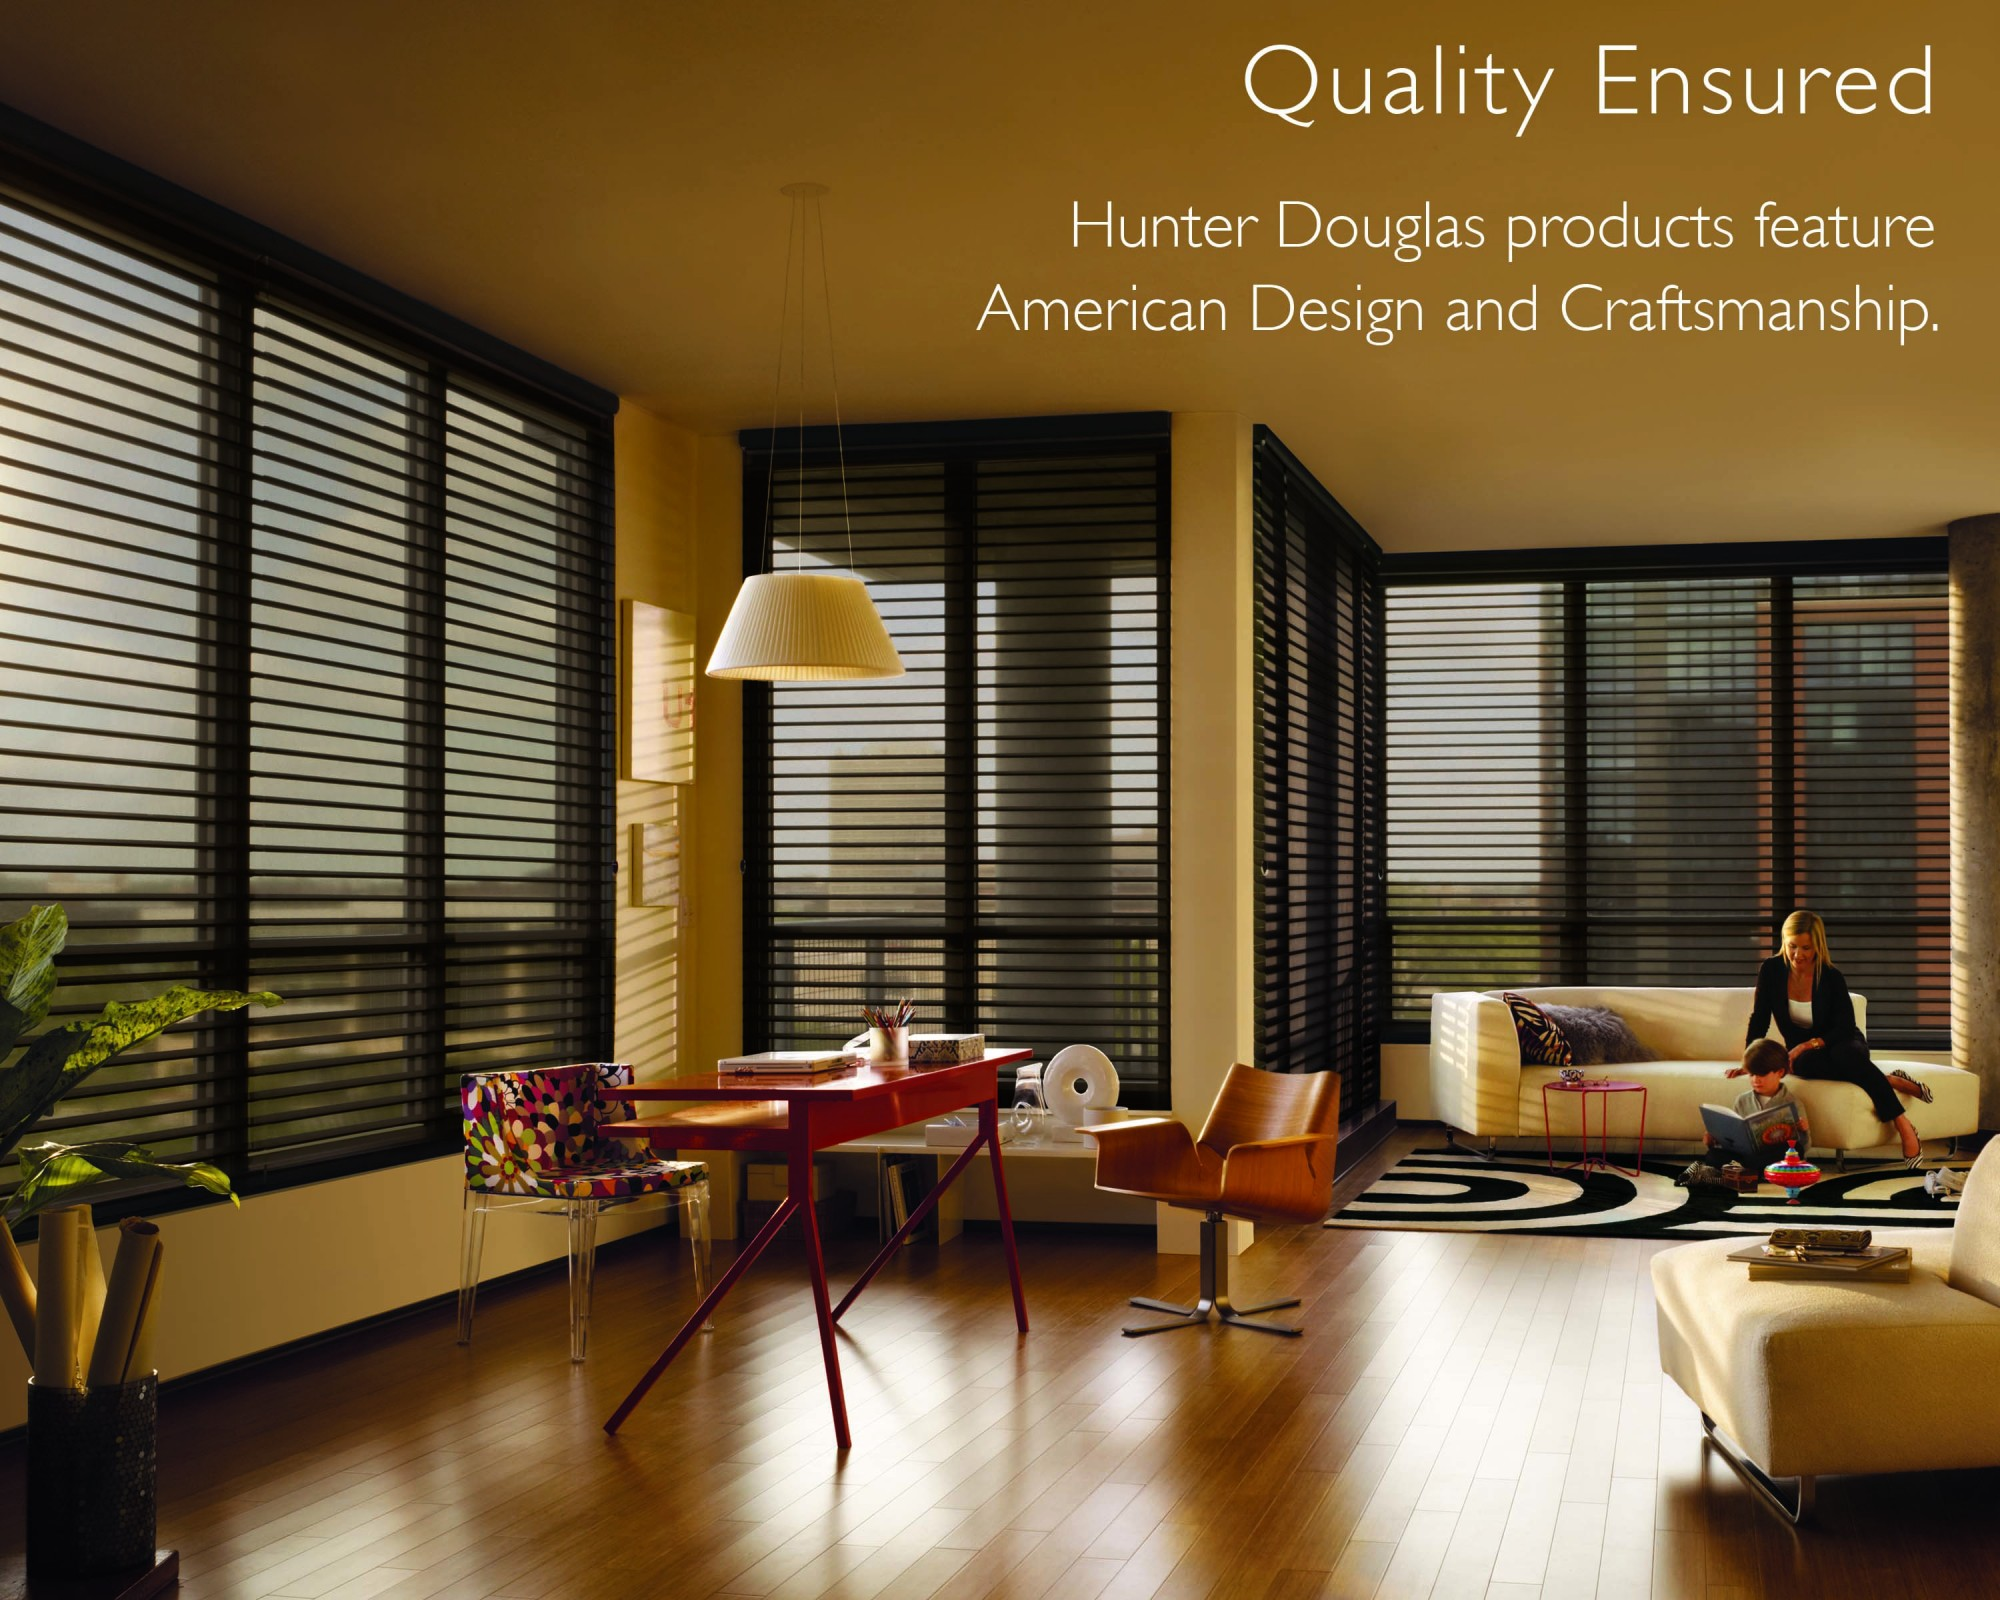 Quality Ensured - Hunter Douglas products feature American Design and Craftsmanship